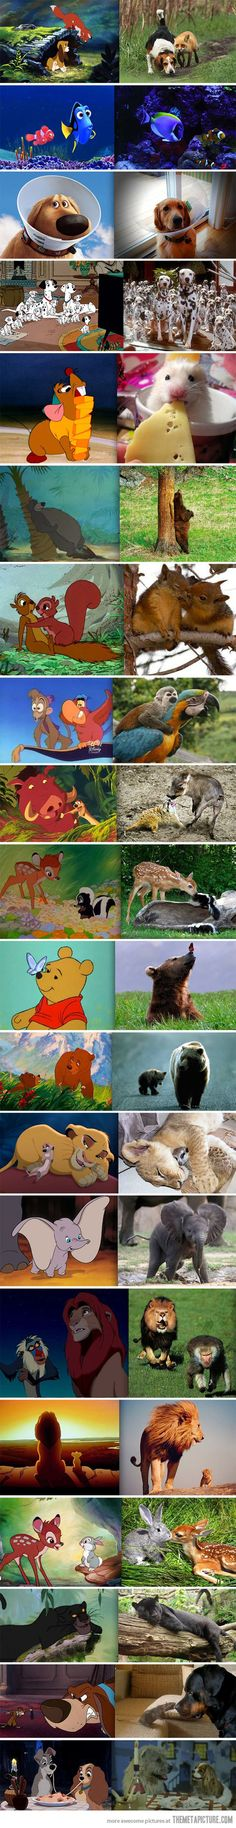 Classic Disney movies turned into reality